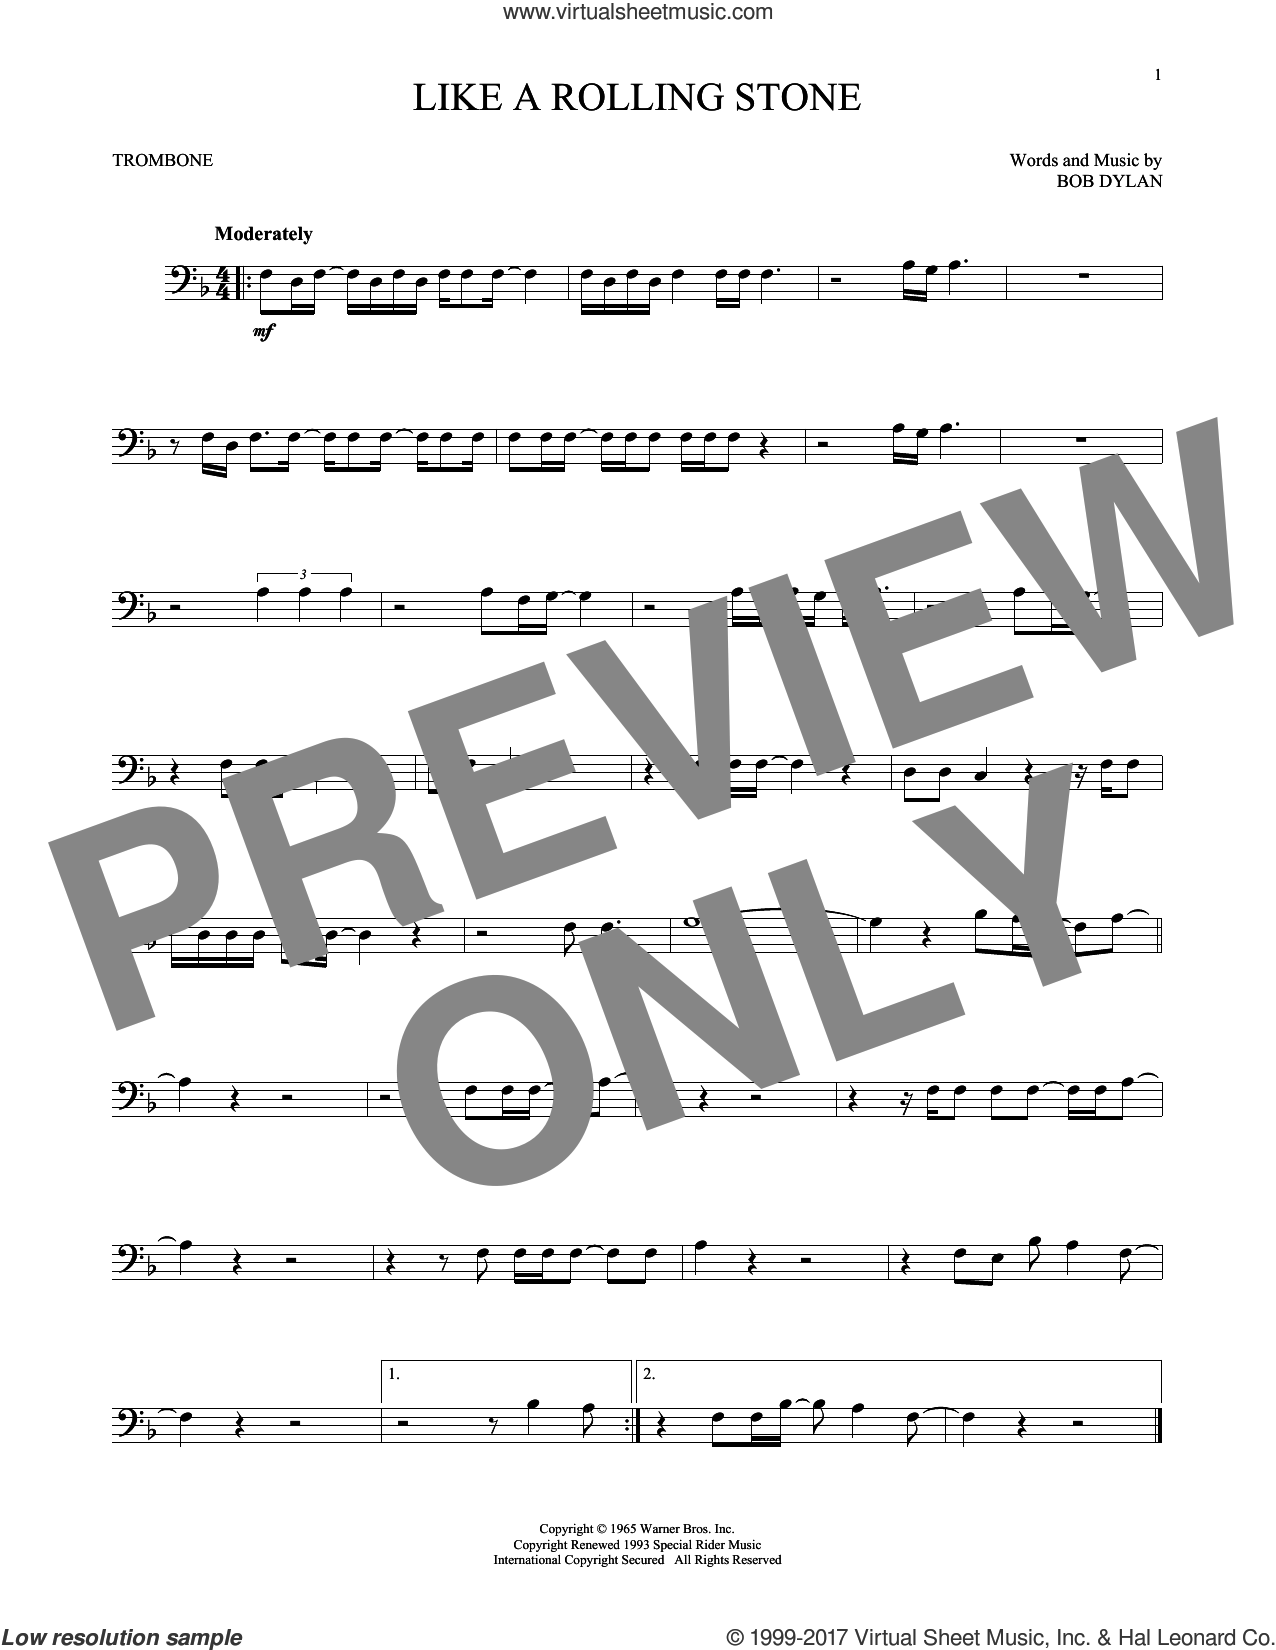 Like A Rolling Stone sheet music for trombone solo by Bob Dylan, intermediate skill level